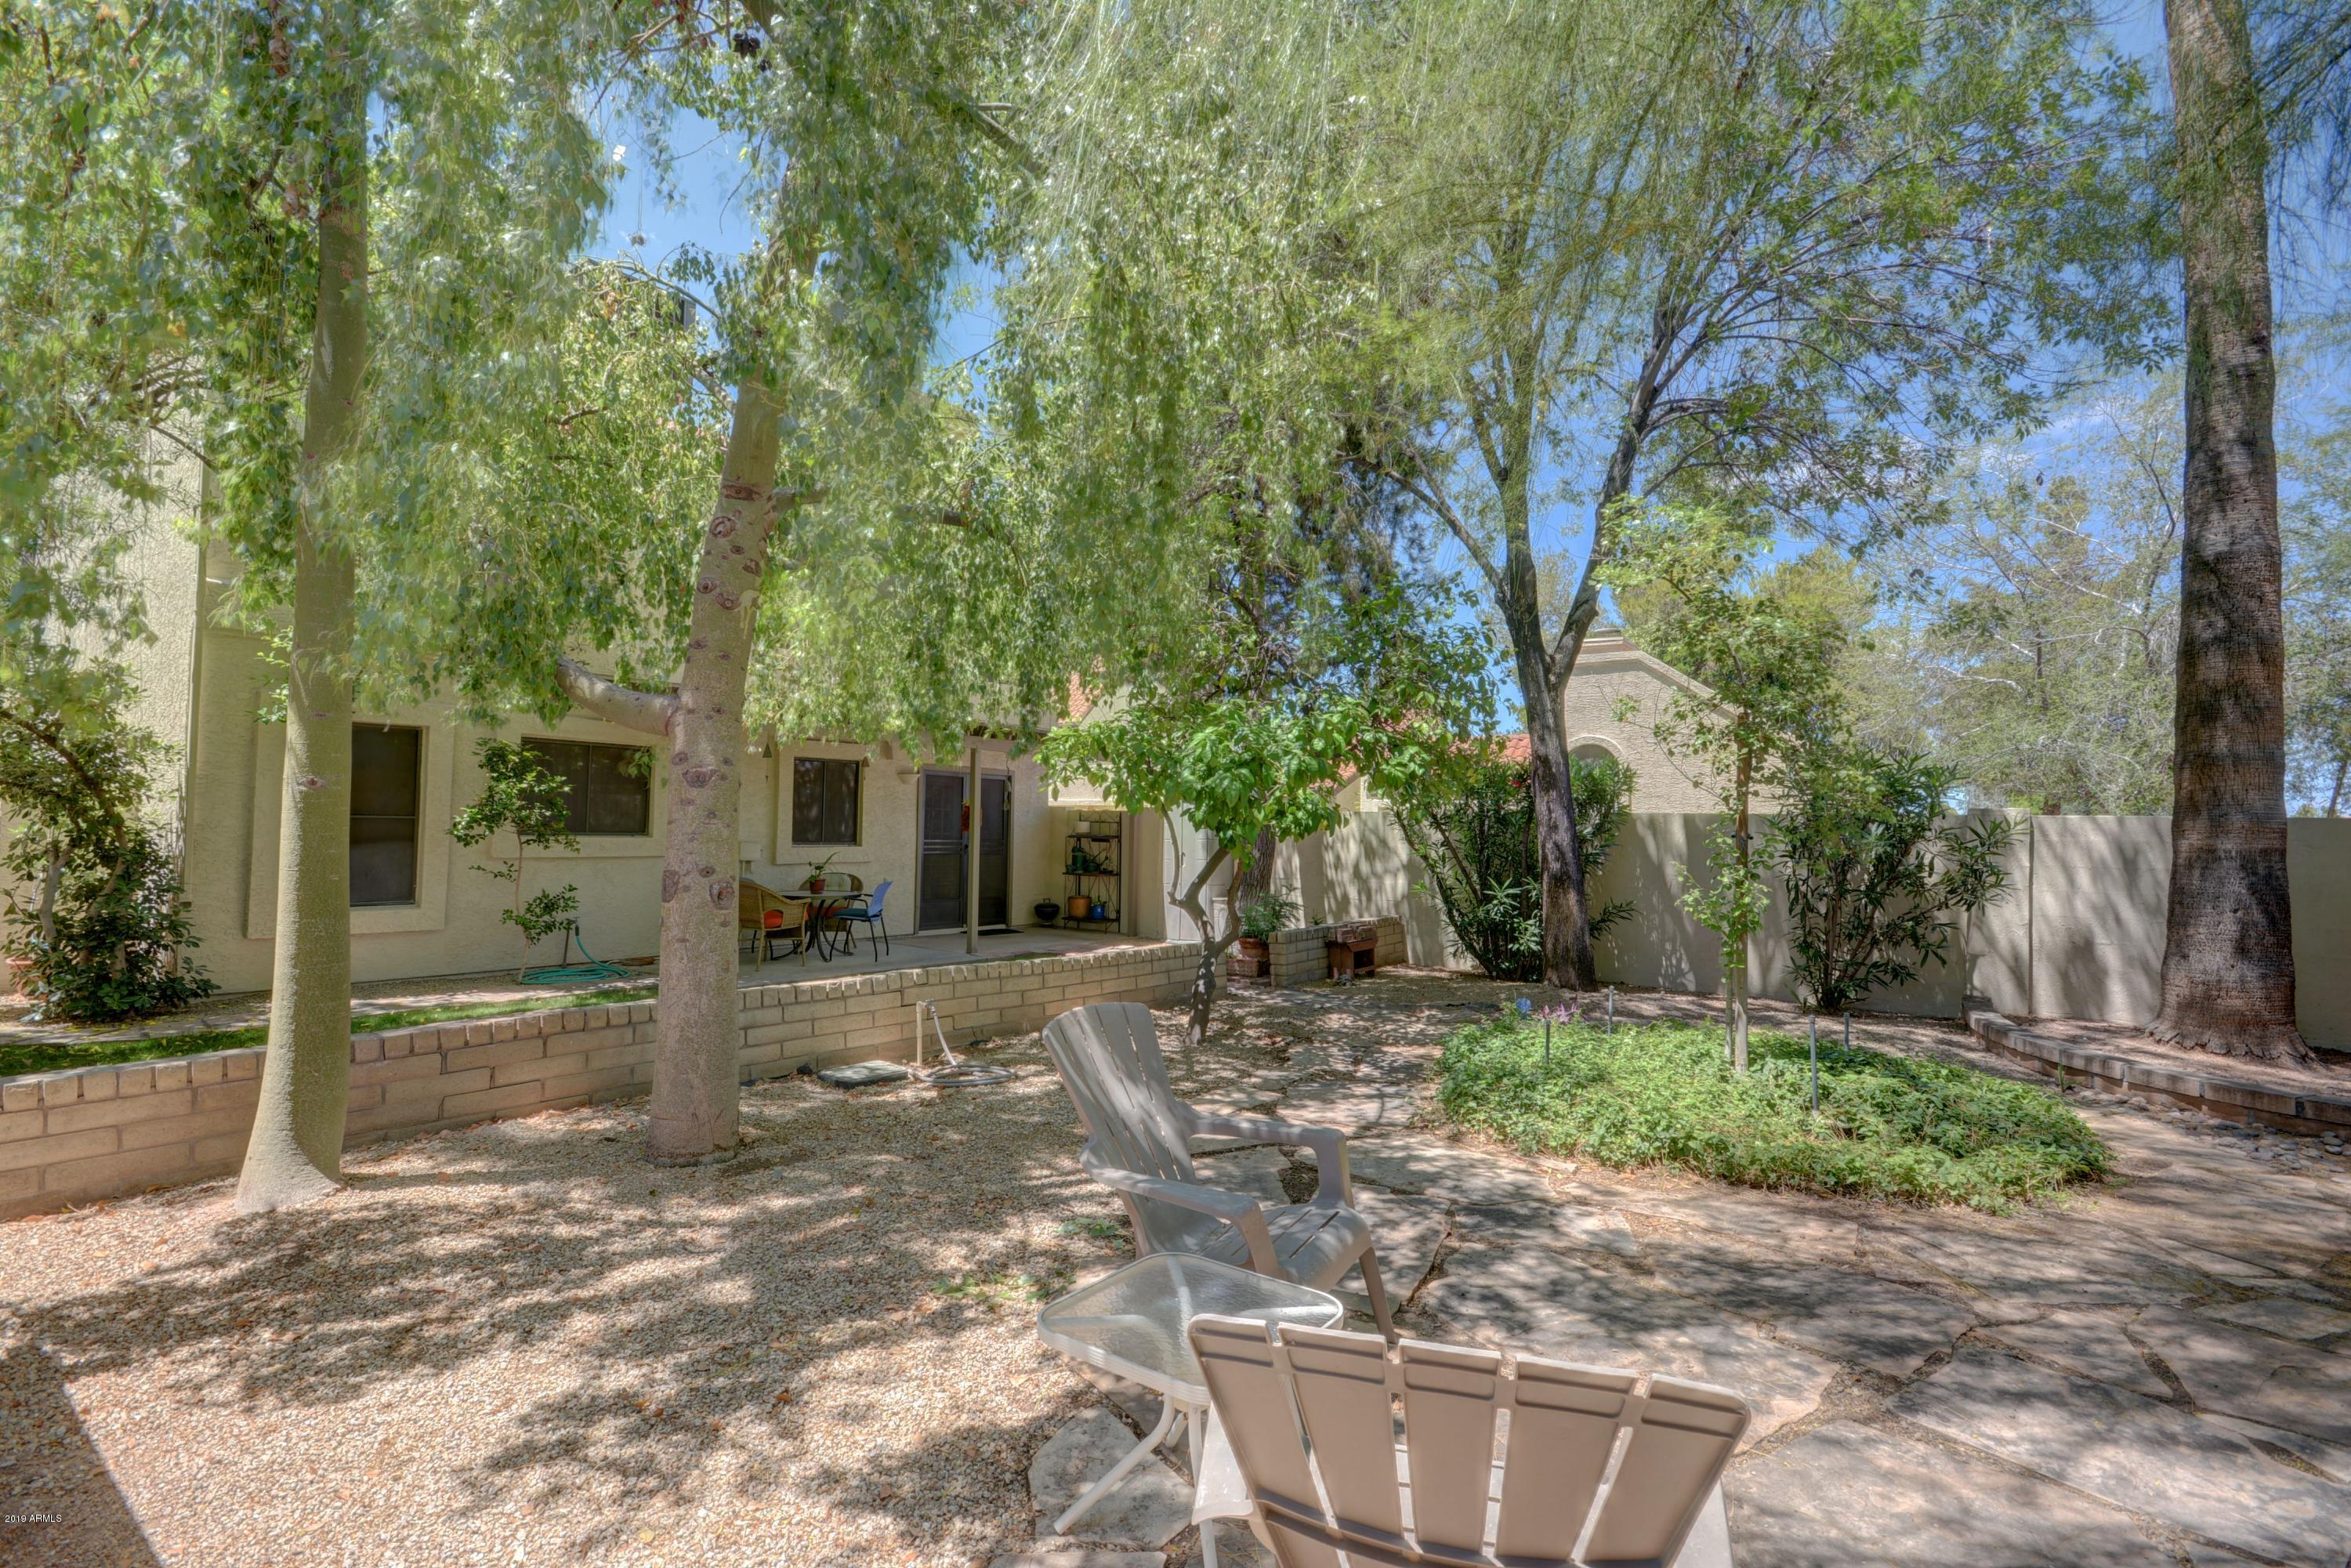 1604 E REDMON Drive, Tempe, 85283, MLS # 5934344 | Better Homes and Gardens  BloomTree Realty